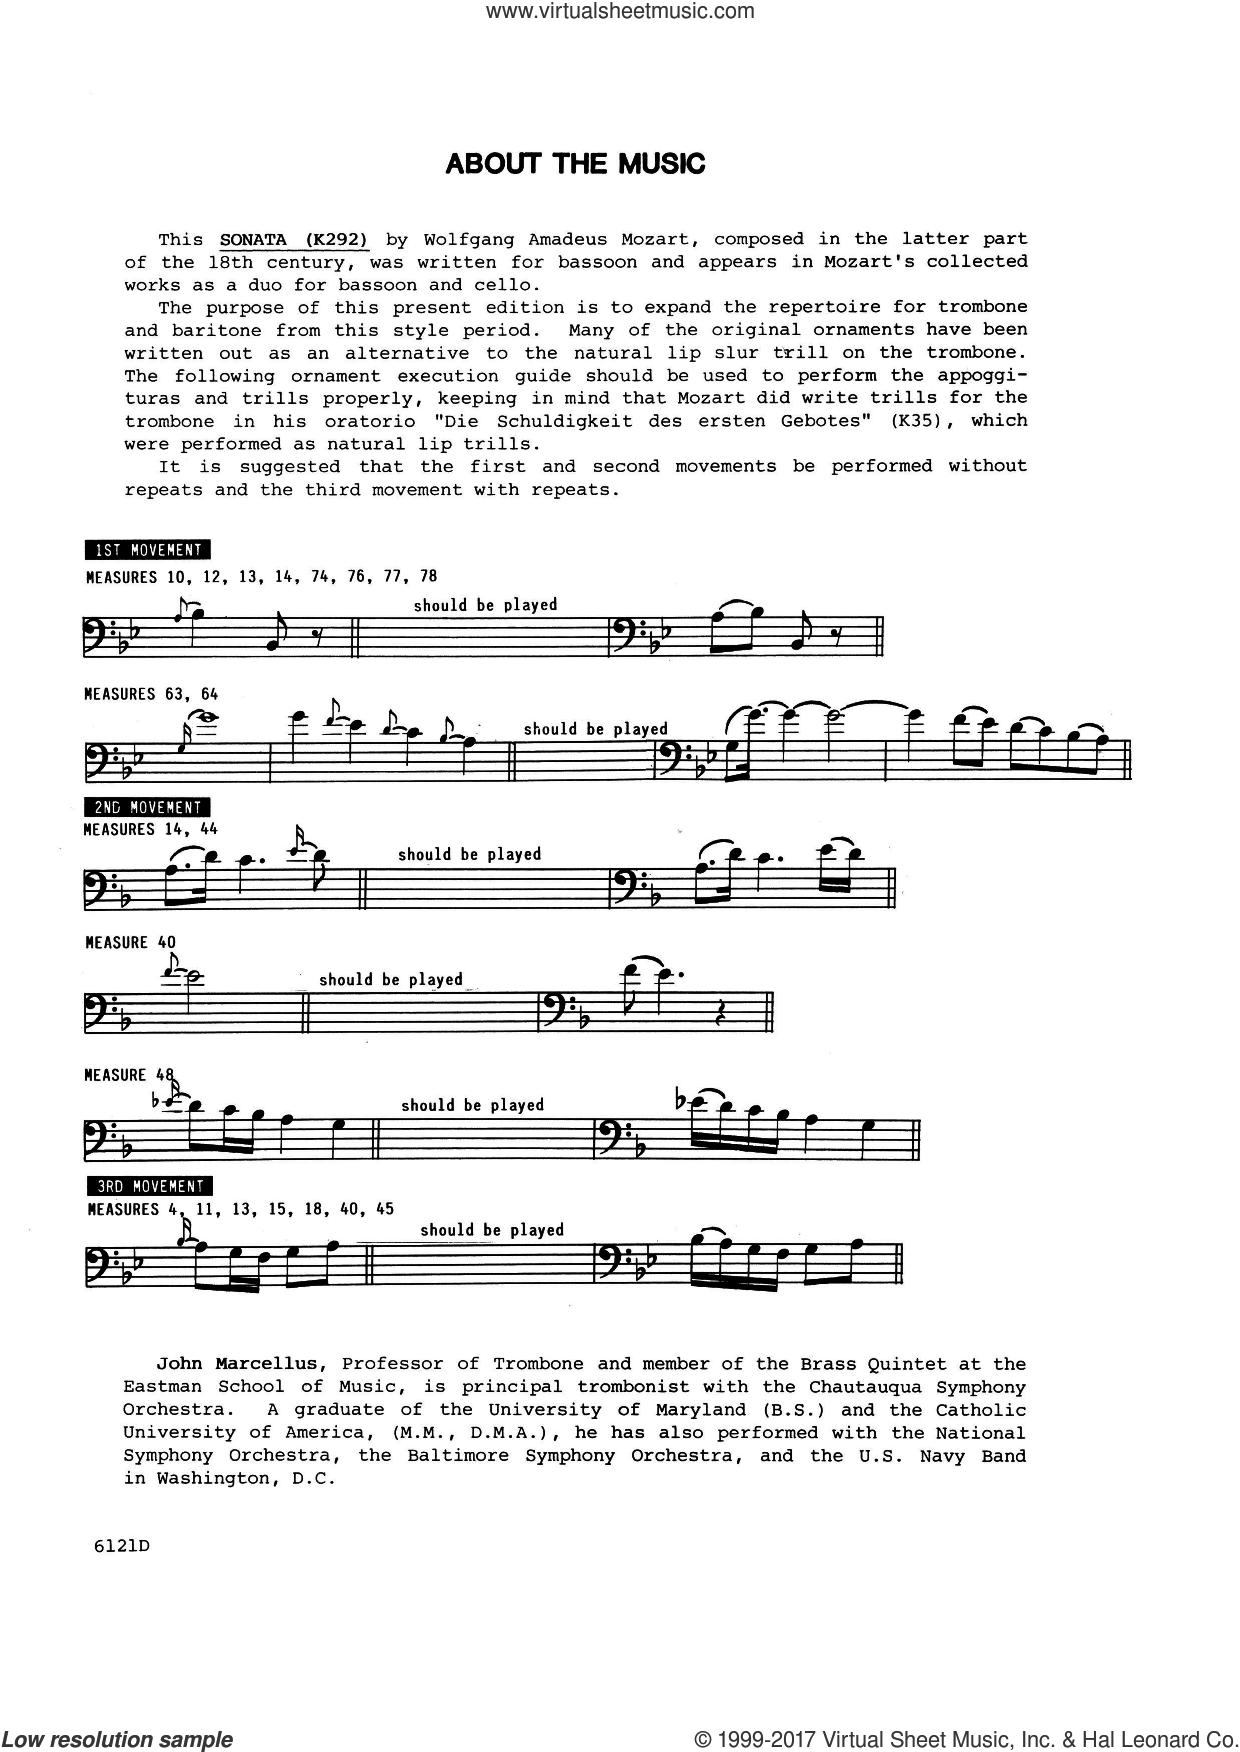 Sonata In Bb Major (K292) (complete set of parts) sheet music for trombone and piano by Wolfgang Amadeus Mozart and John Marcellus, classical score, intermediate trombone. Score Image Preview.